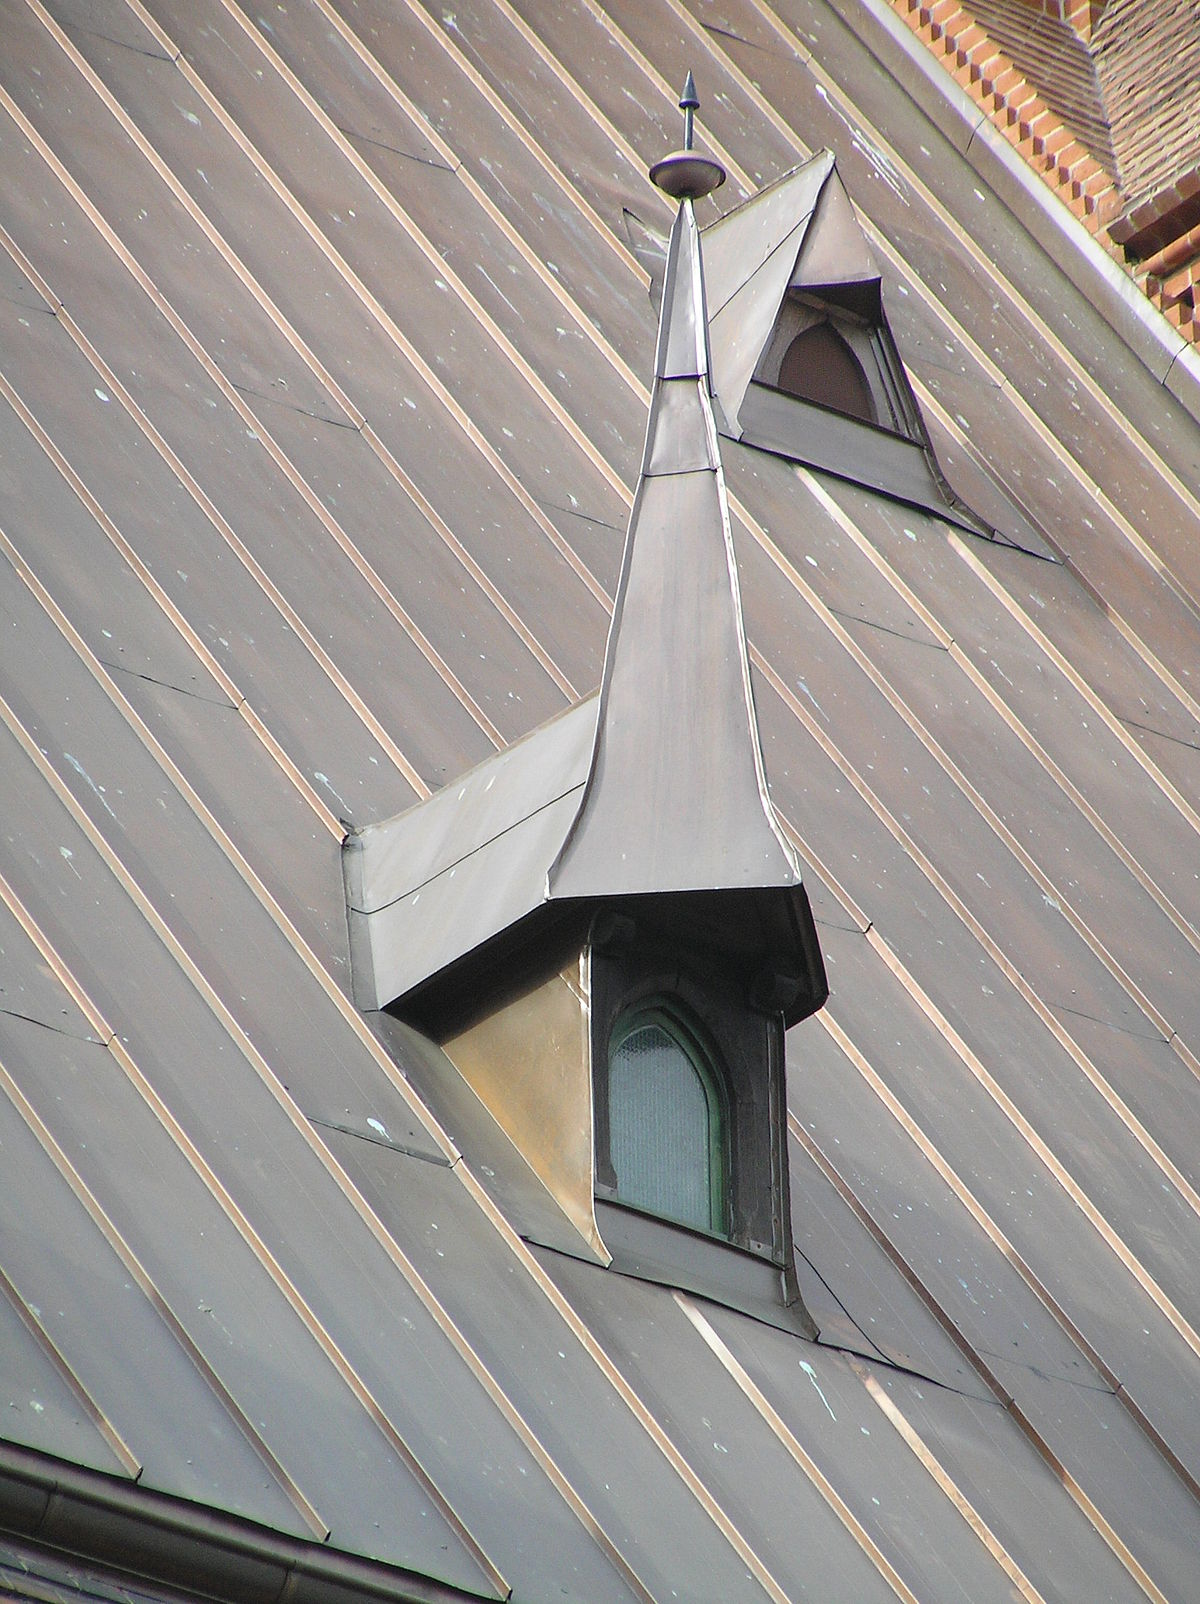 Metal roof - Wikipedia